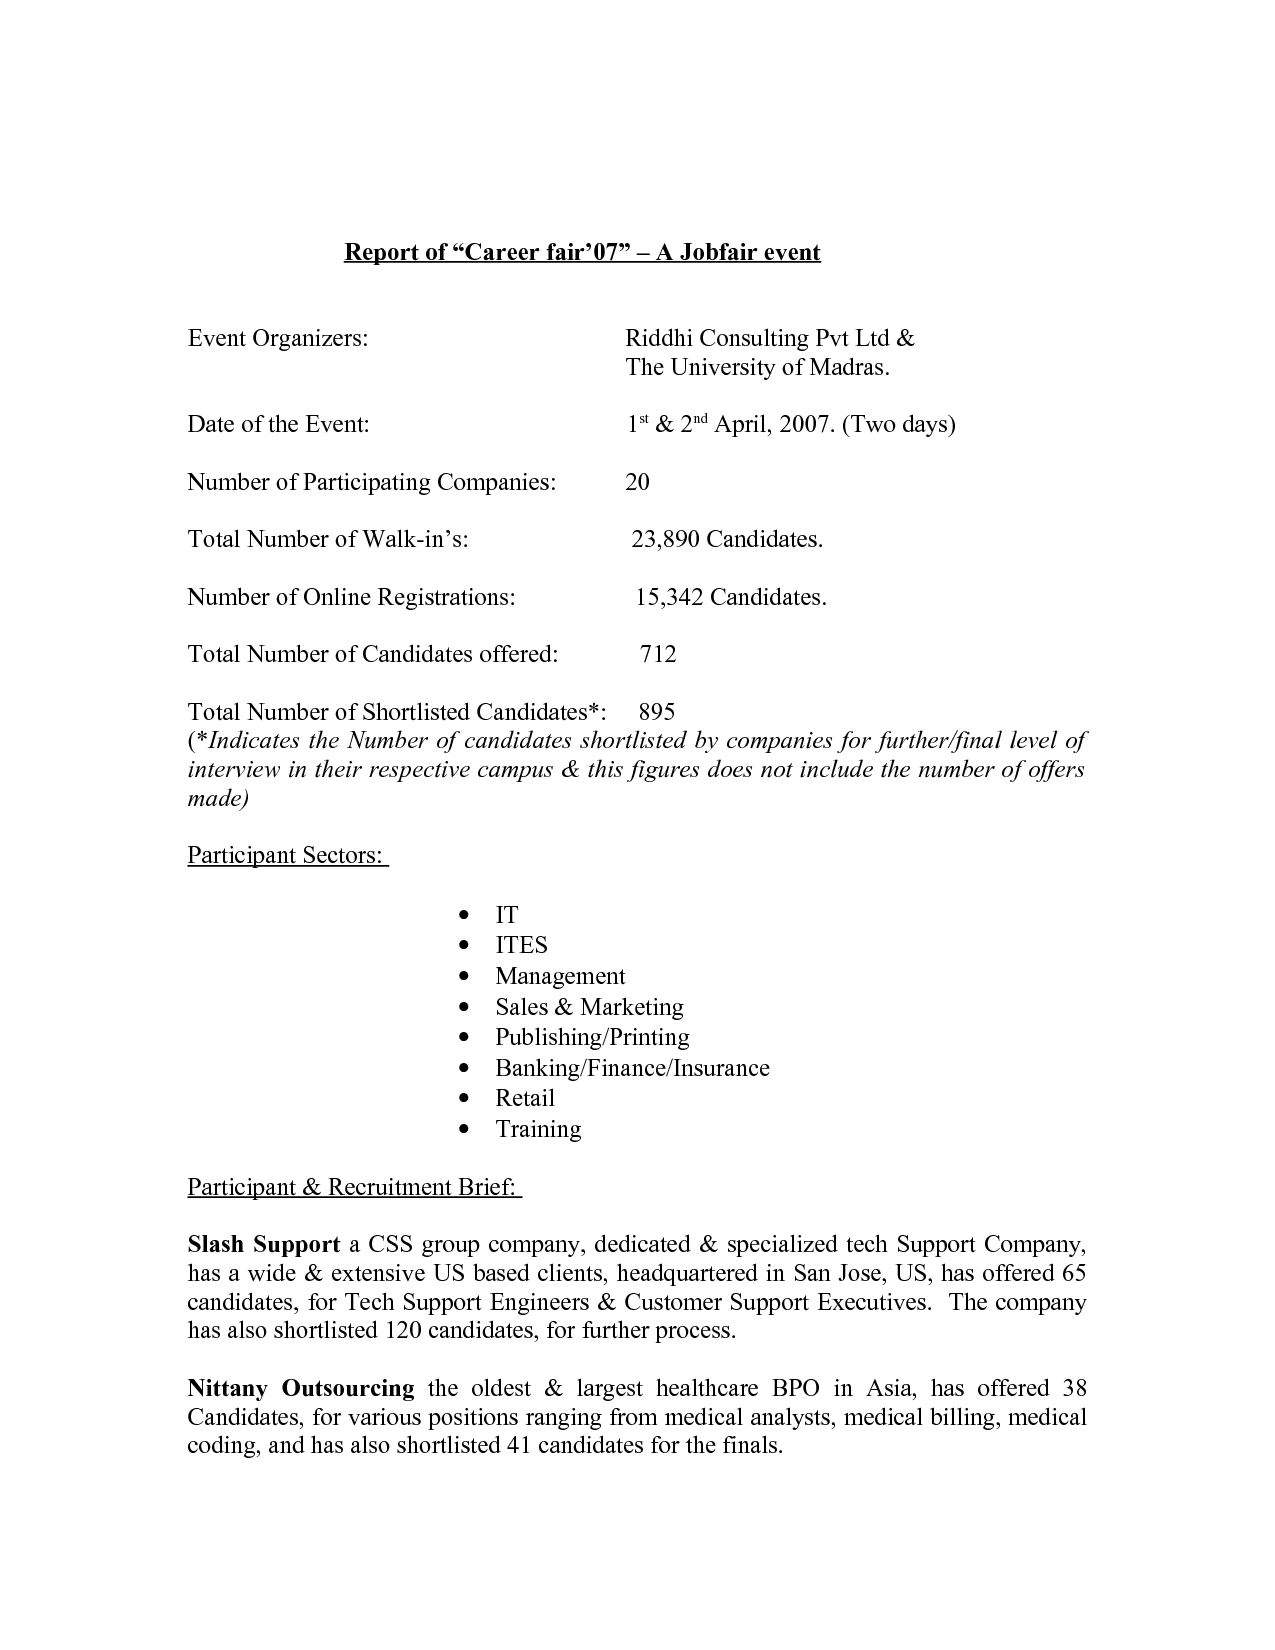 Resume Format For Freshers Free Download Resume Format For Freshers Free  Download, Resume Format For